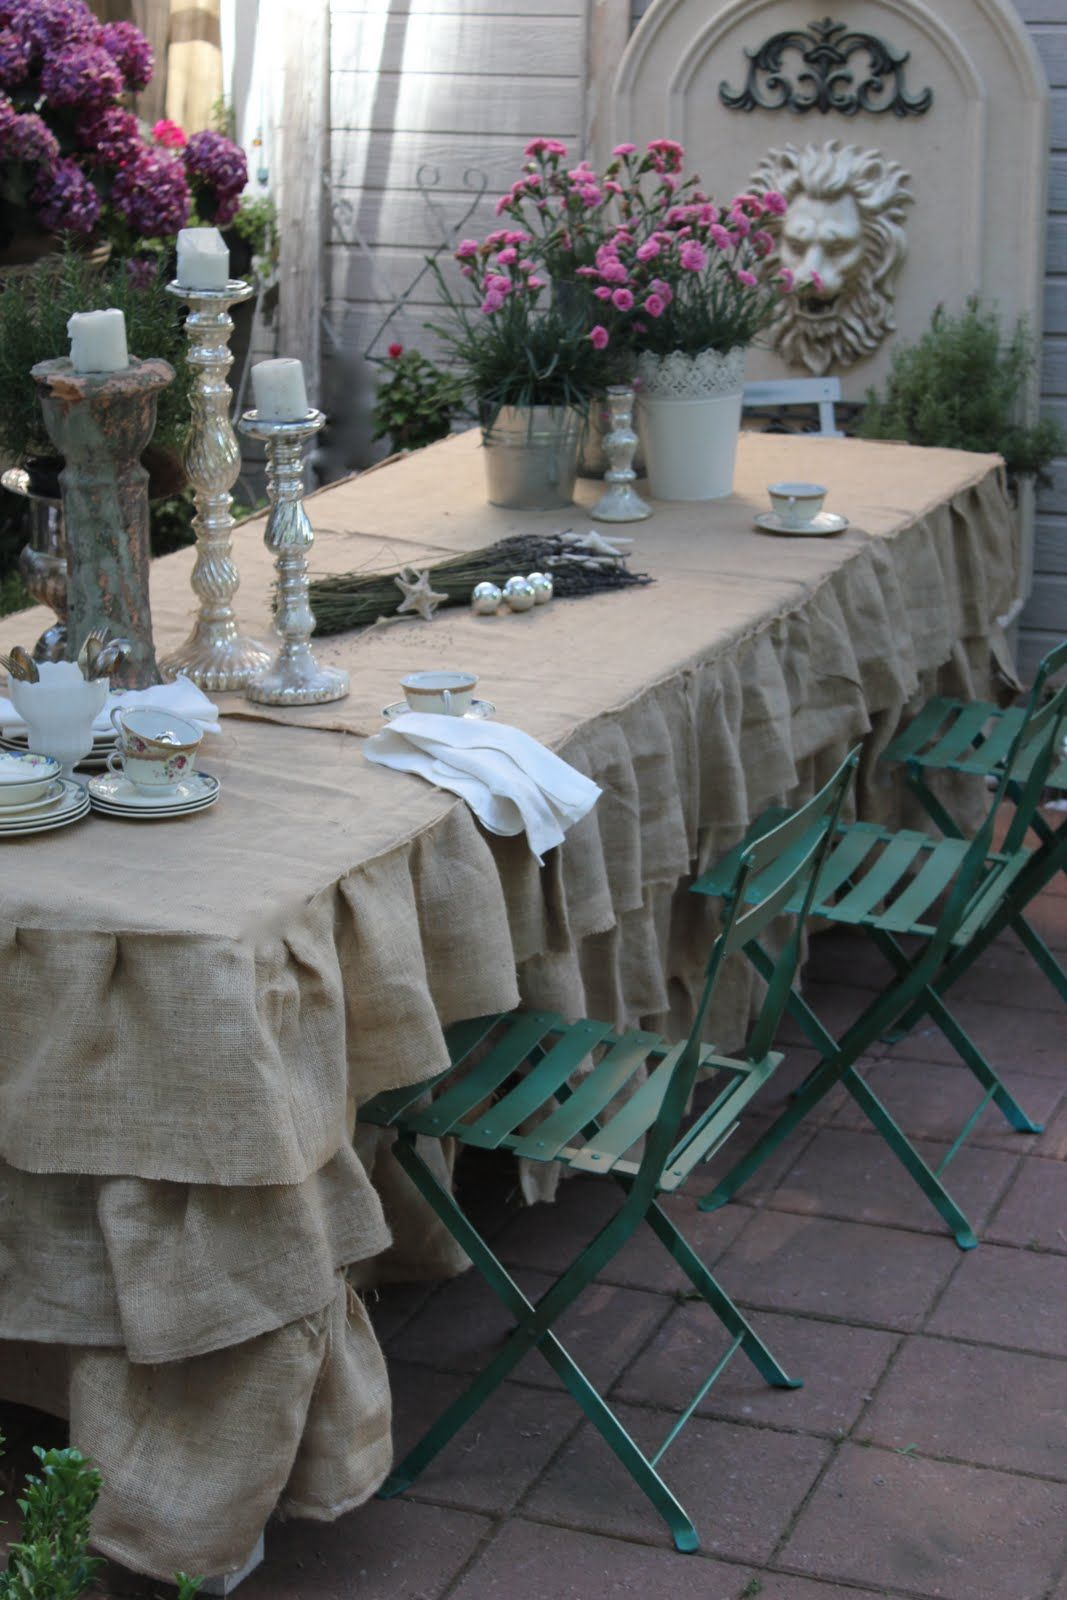 High Quality Burlap Ruffle Table Cloth   Only I Used A $20 Drop Cloth From Home Depot.